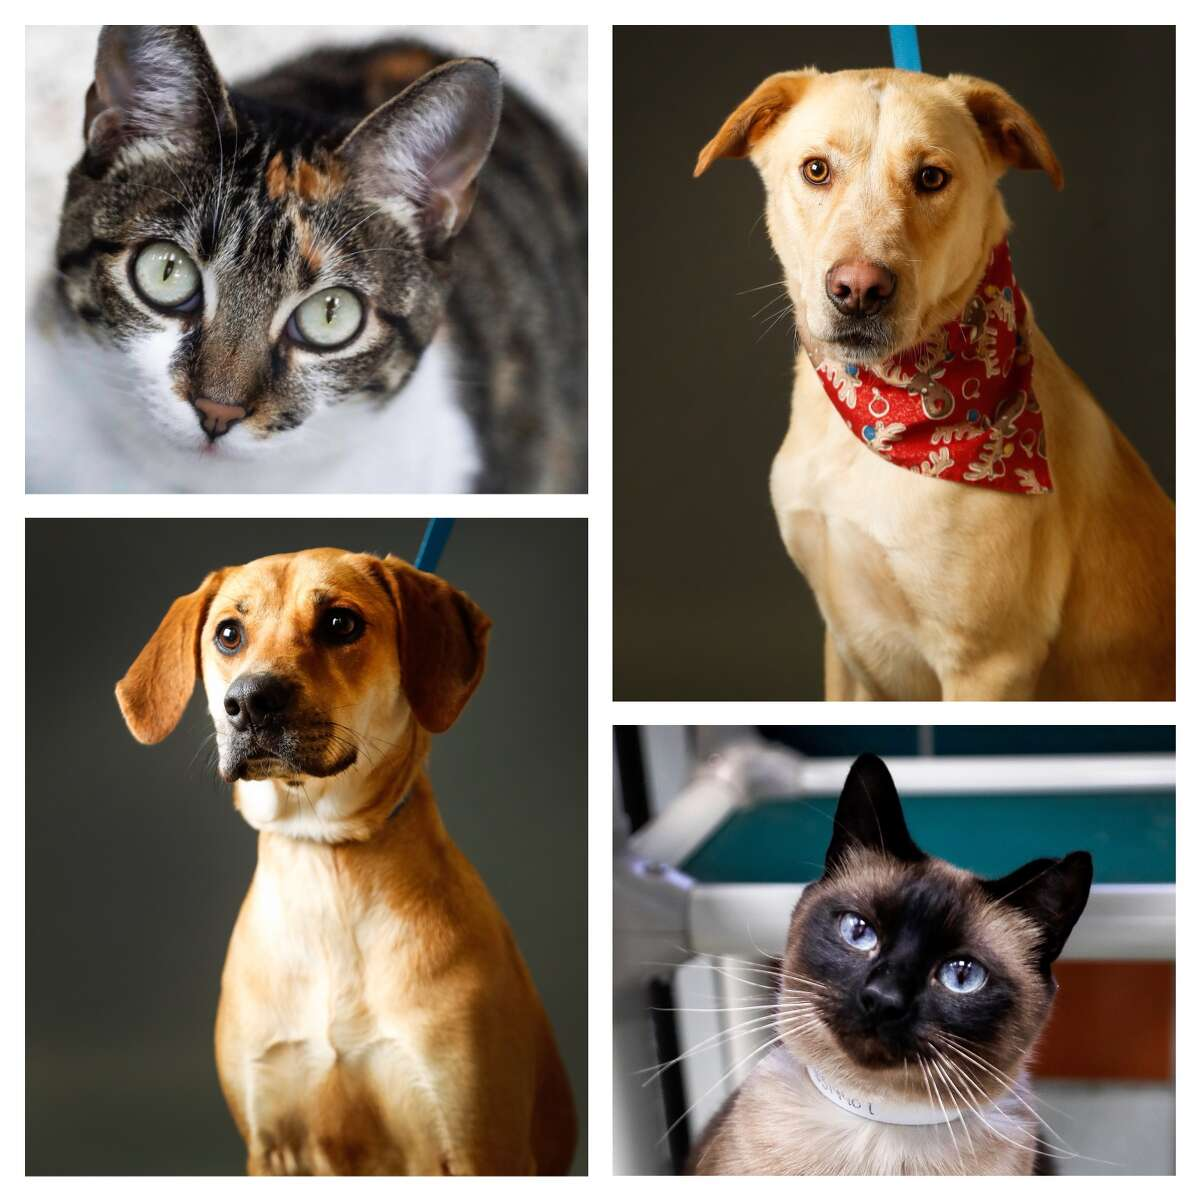 Animals ready to be adopted from the Houston Humane Society. Photographed Tuesday, Dec. 11, 2018, in Houston.